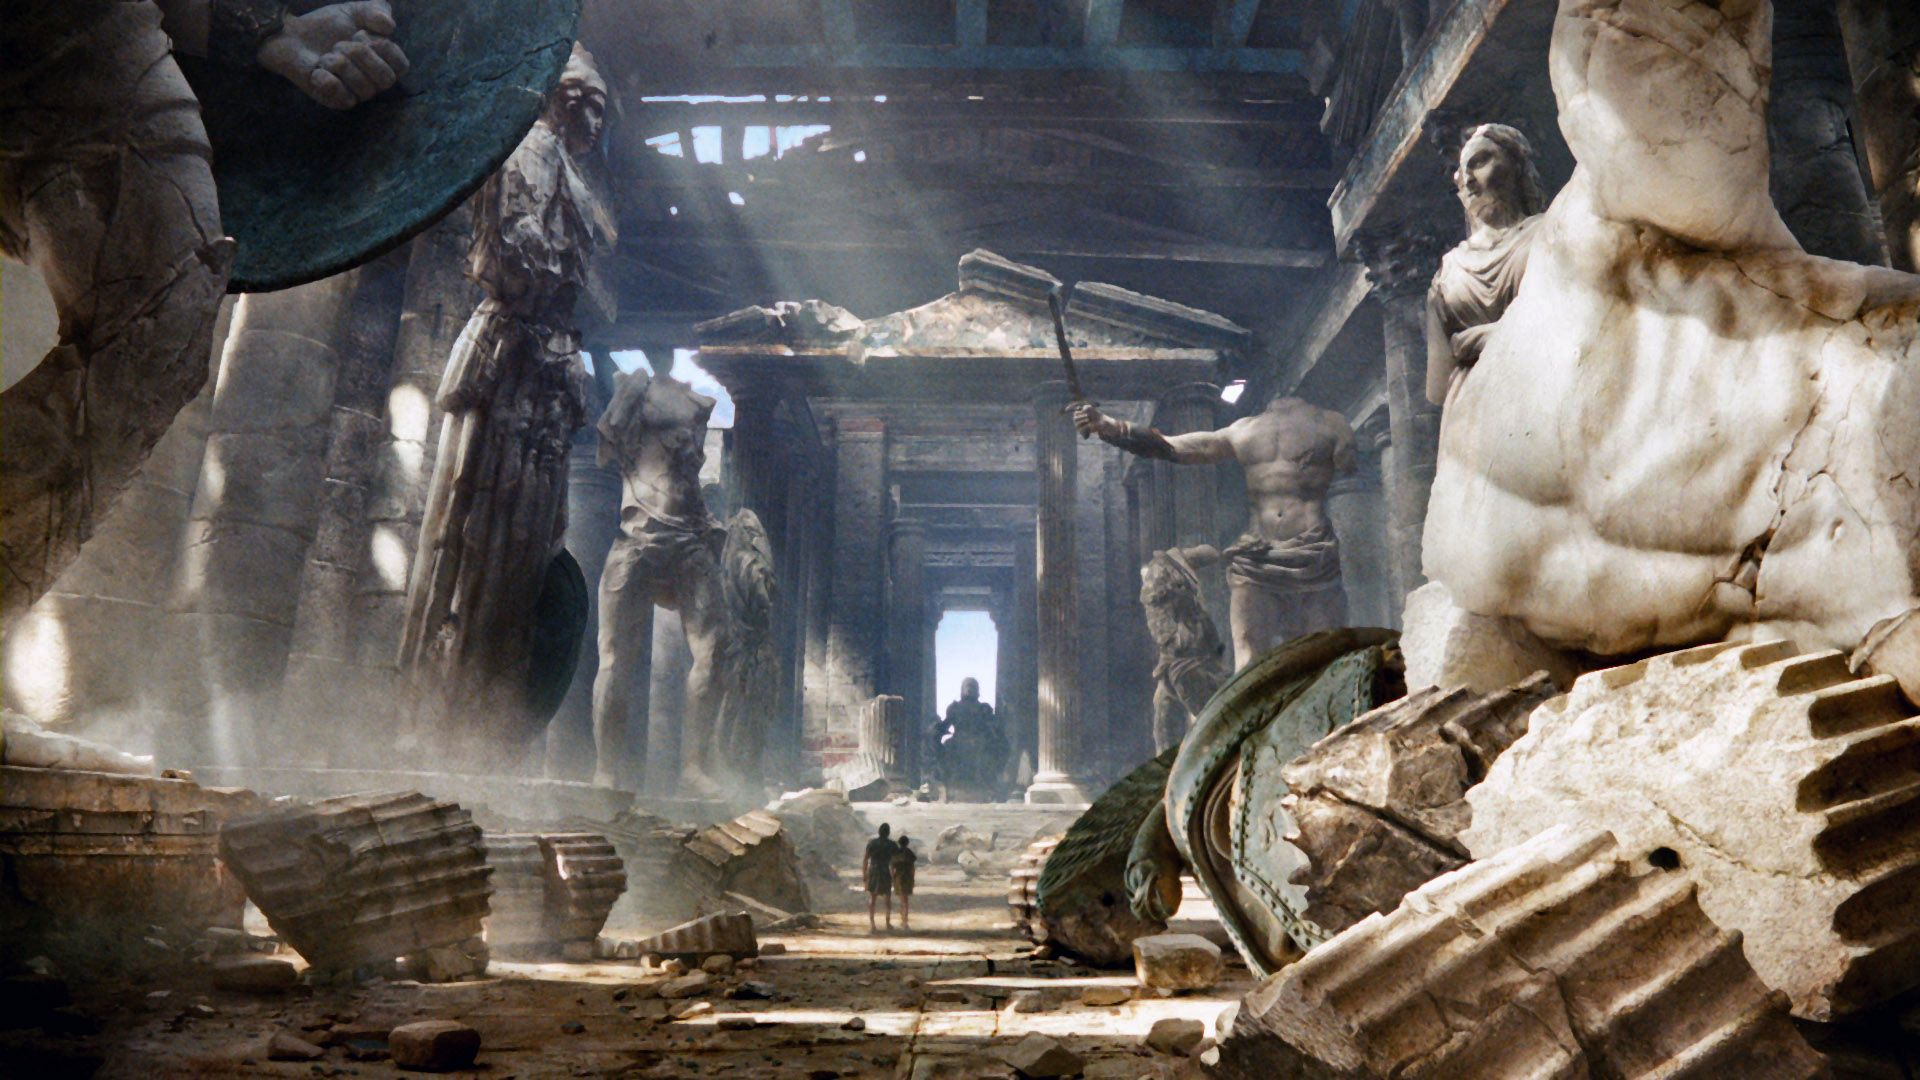 The statue of Zeus at Olympia Wallpapers High Quality Download 1920x1080